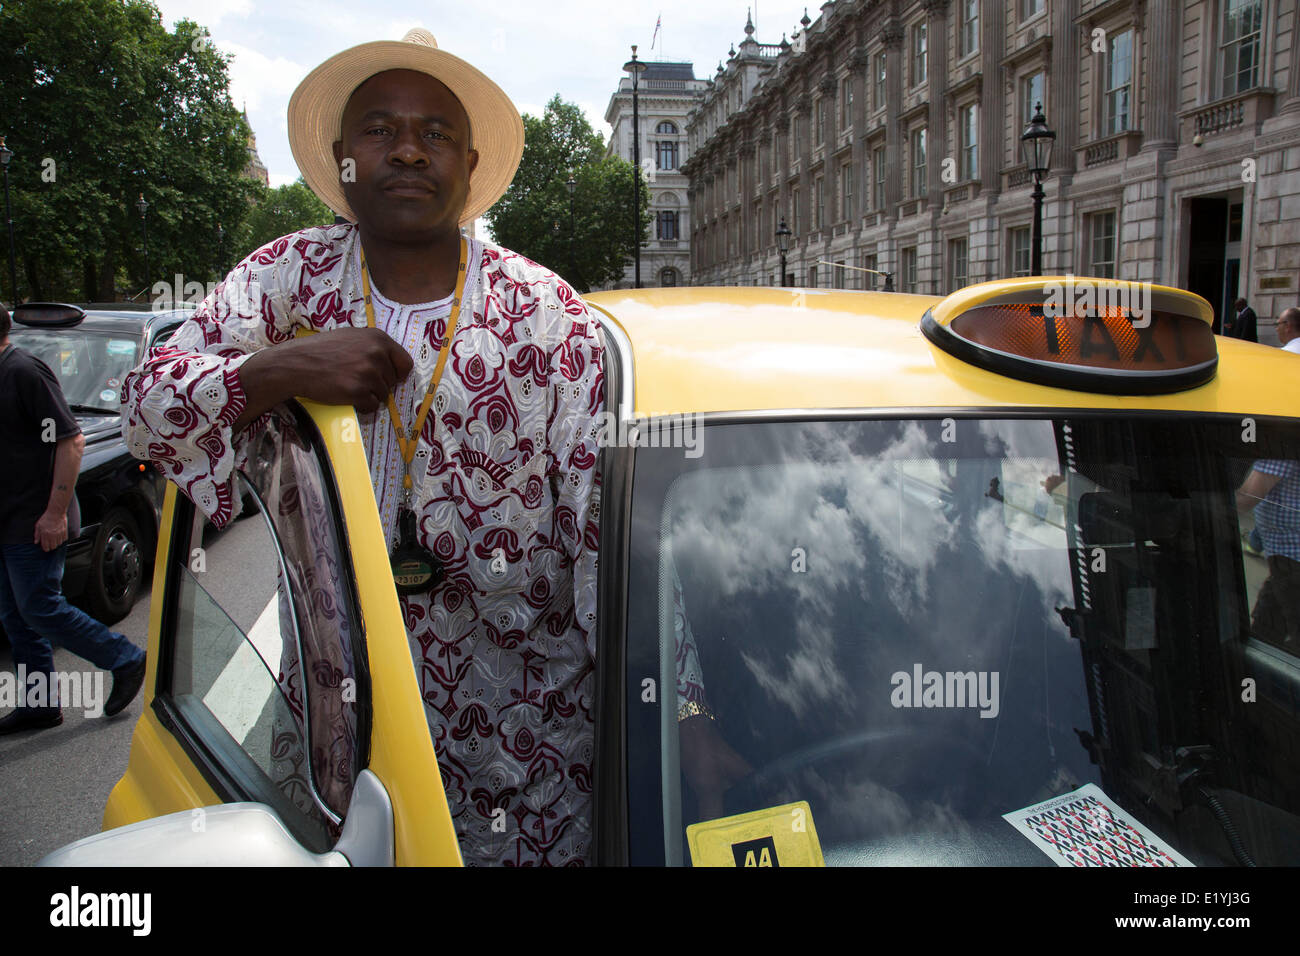 London, UK..11th June 2014. Black taxi drivers protest against taxi service app Uber, brings central London to a Stock Photo